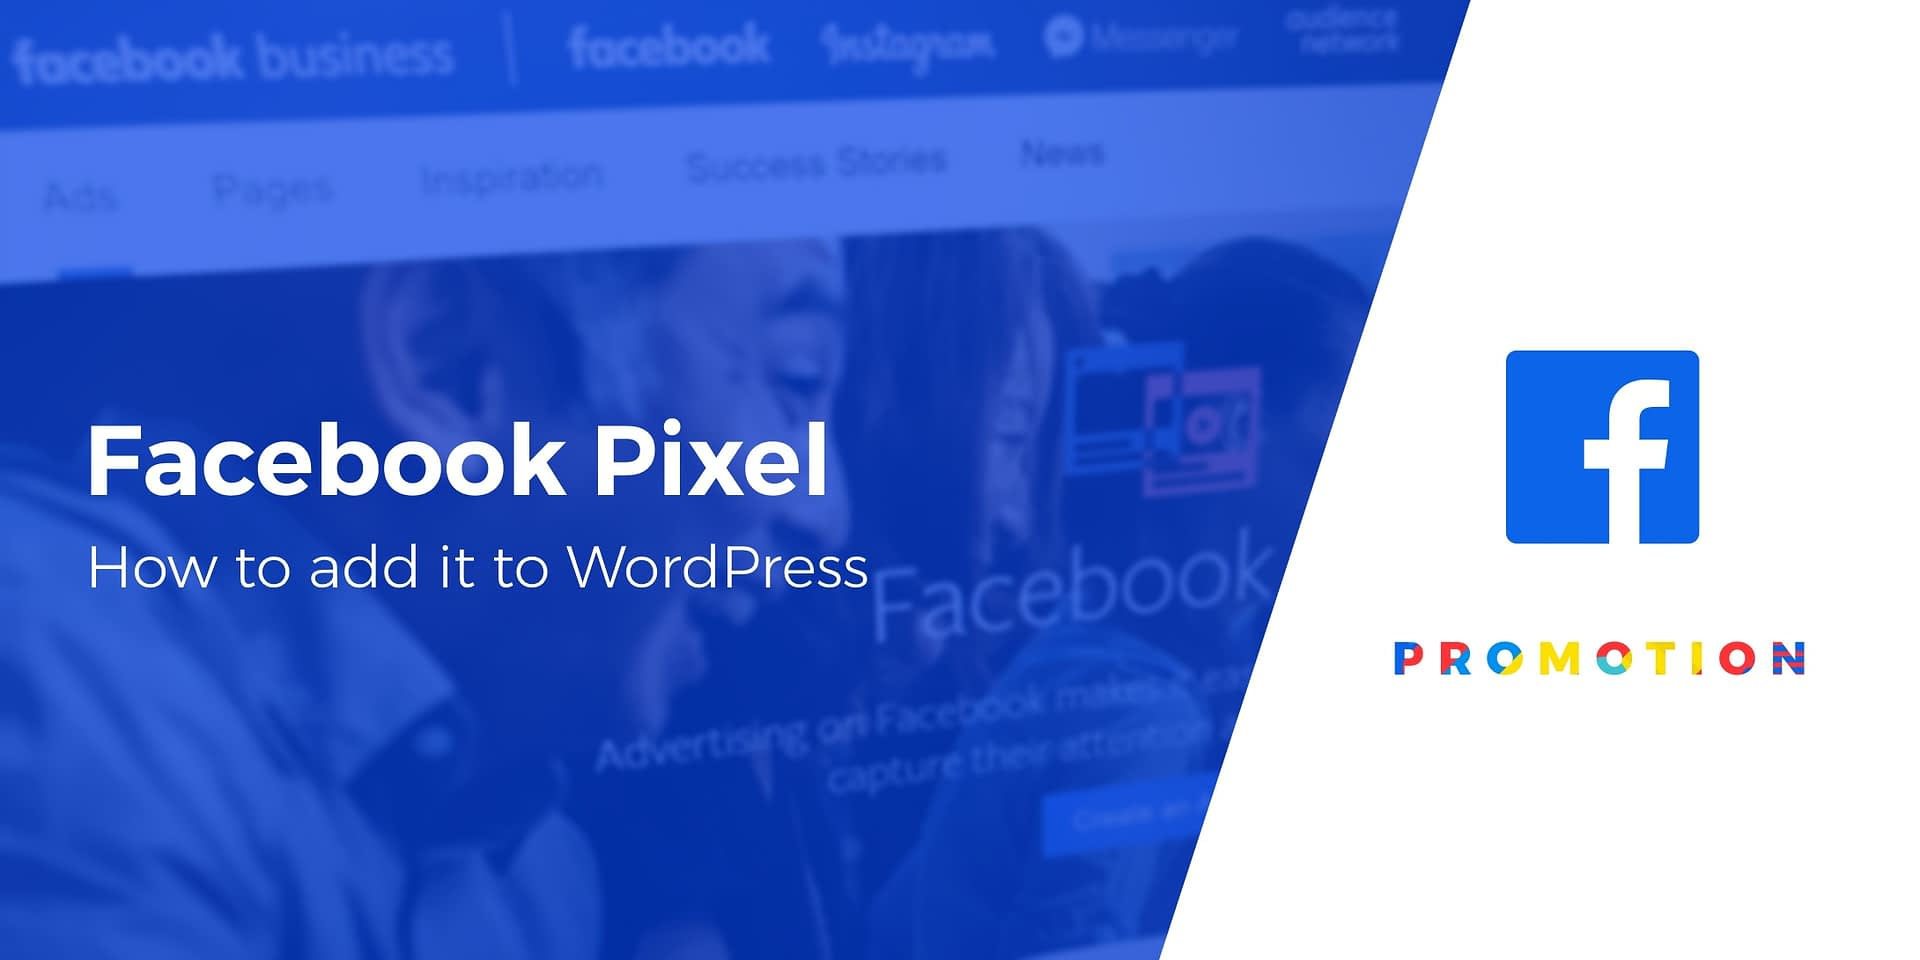 2 Easy Ways to Add Facebook Pixel to WordPress